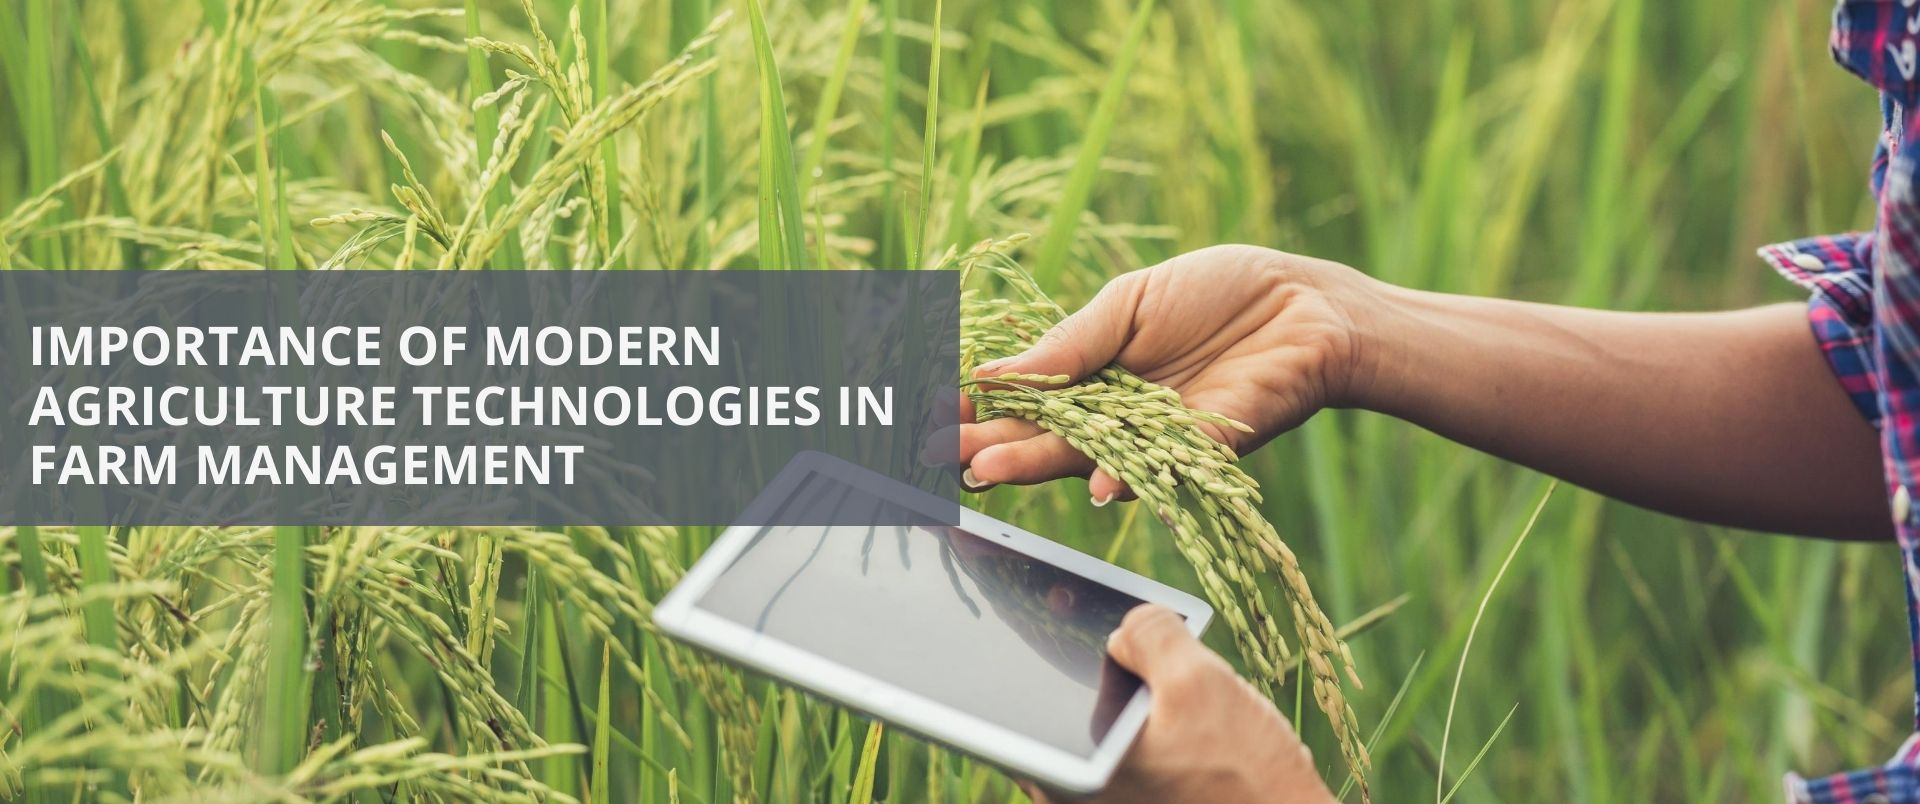 agriculture technologies in farm management